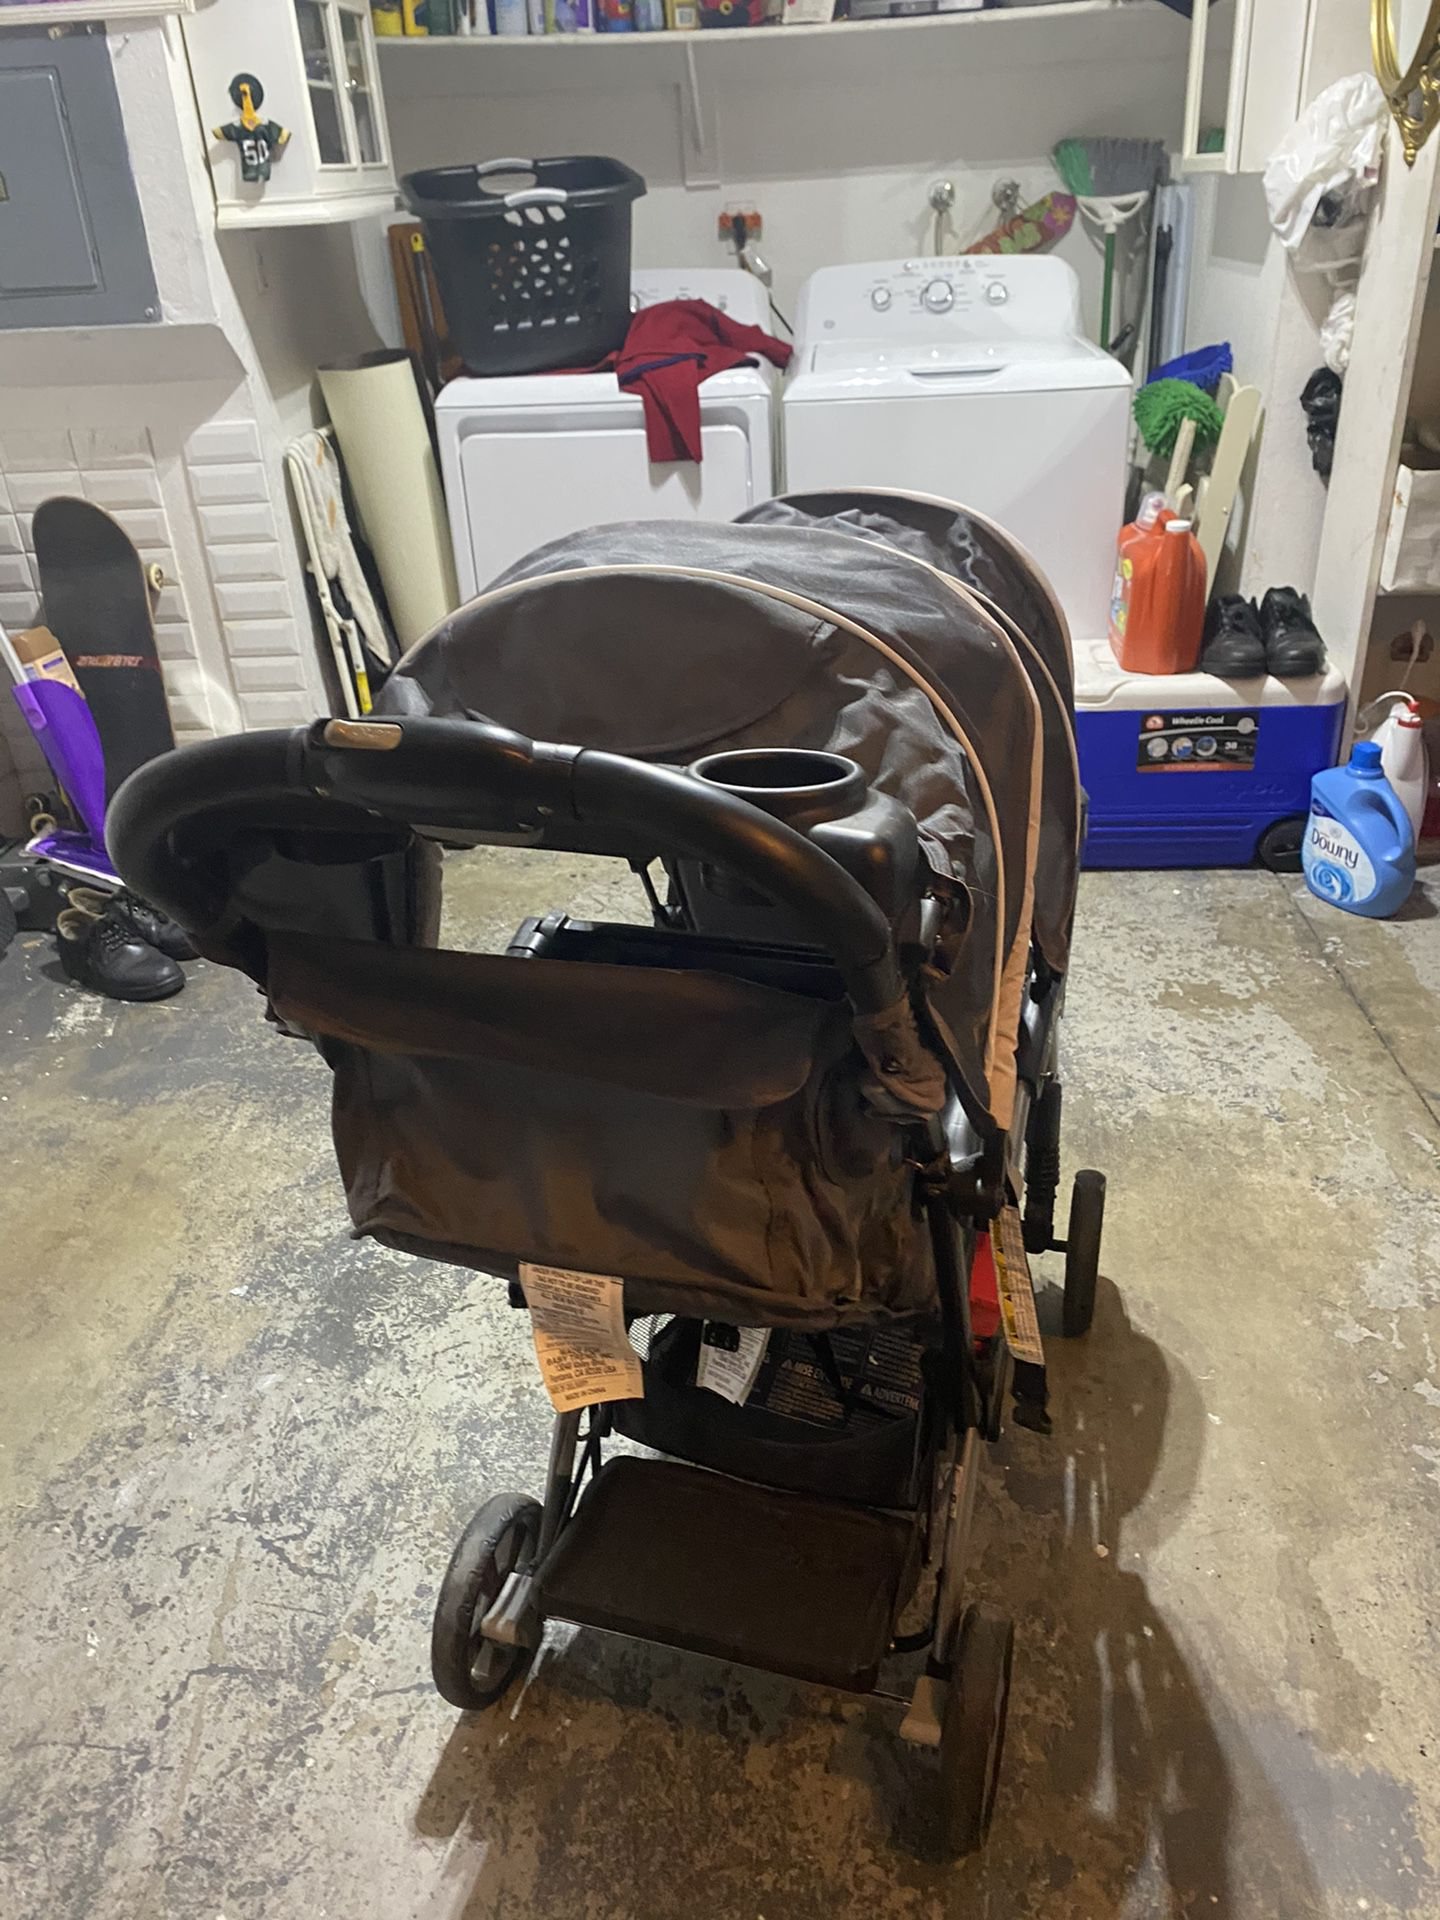 Stroller Double And Stand